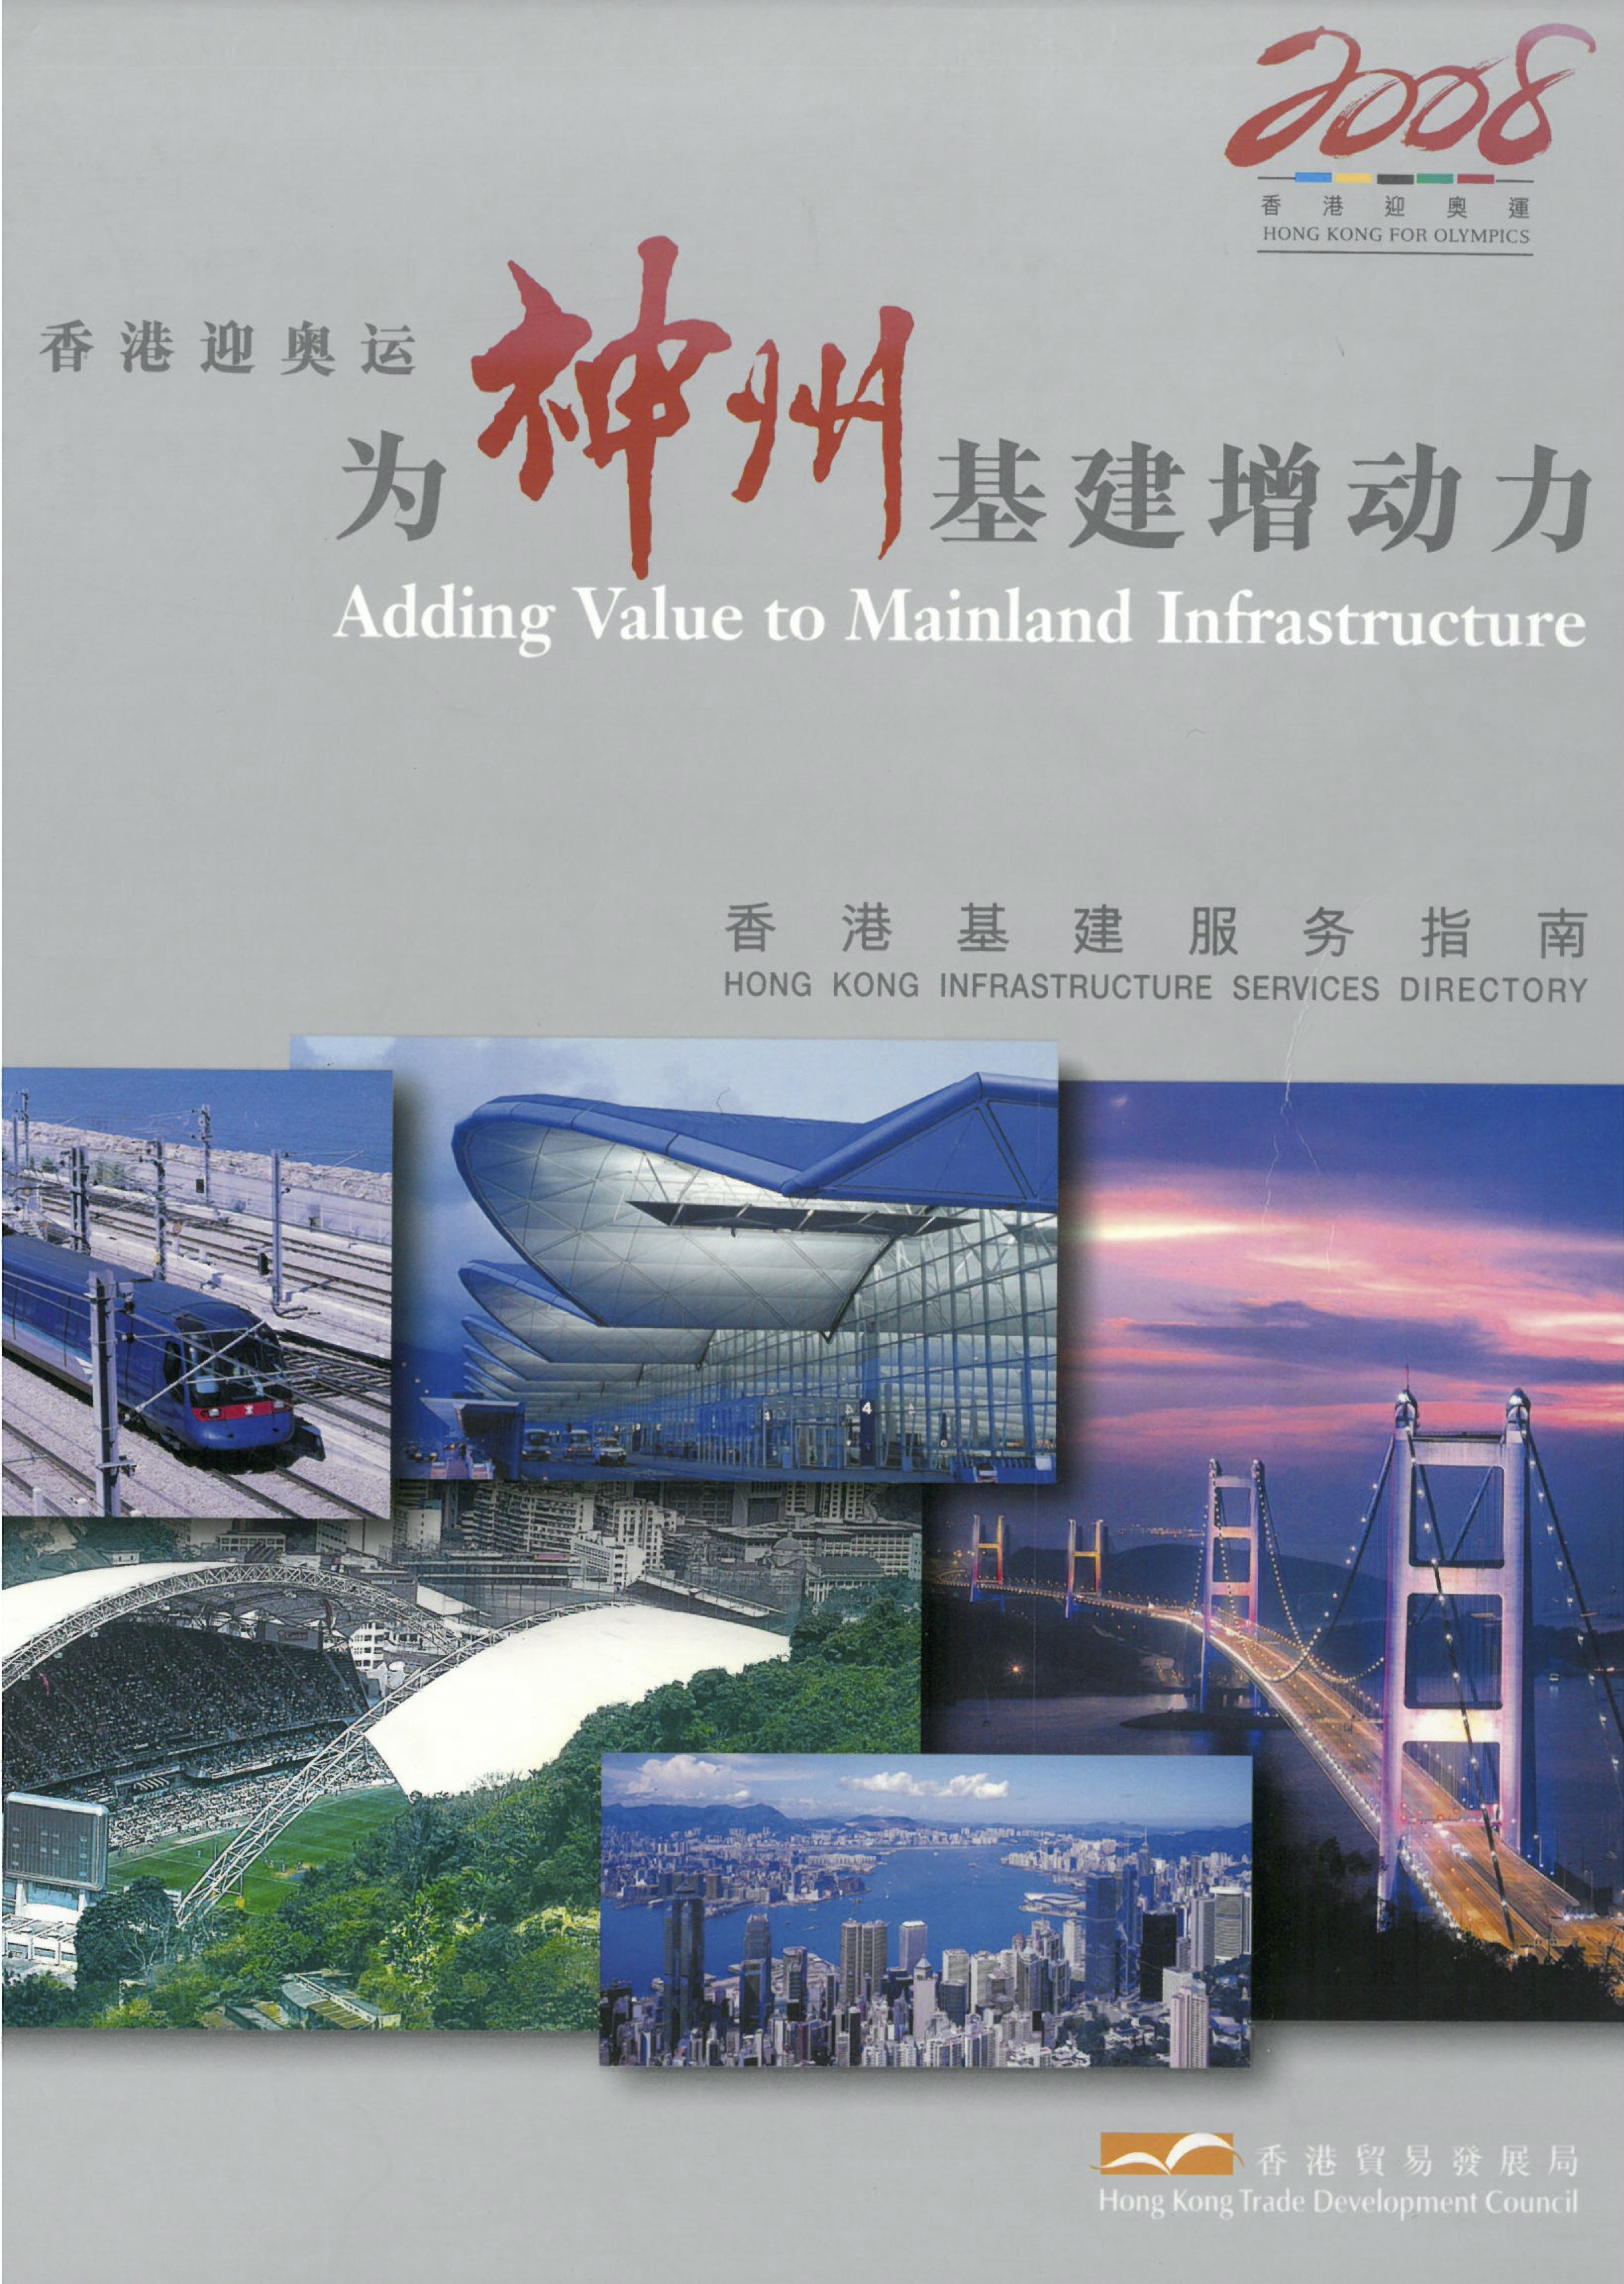 Hong Kong Infrastructure Services Directory for Beijing Olympics 2008